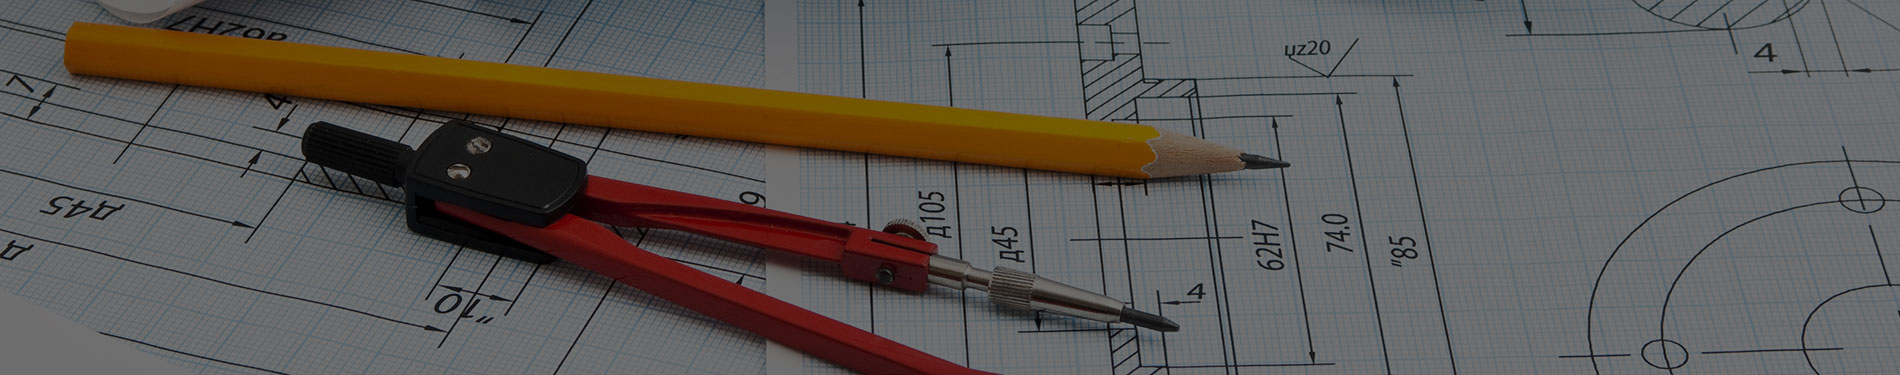 pencil and compass resting on building plans